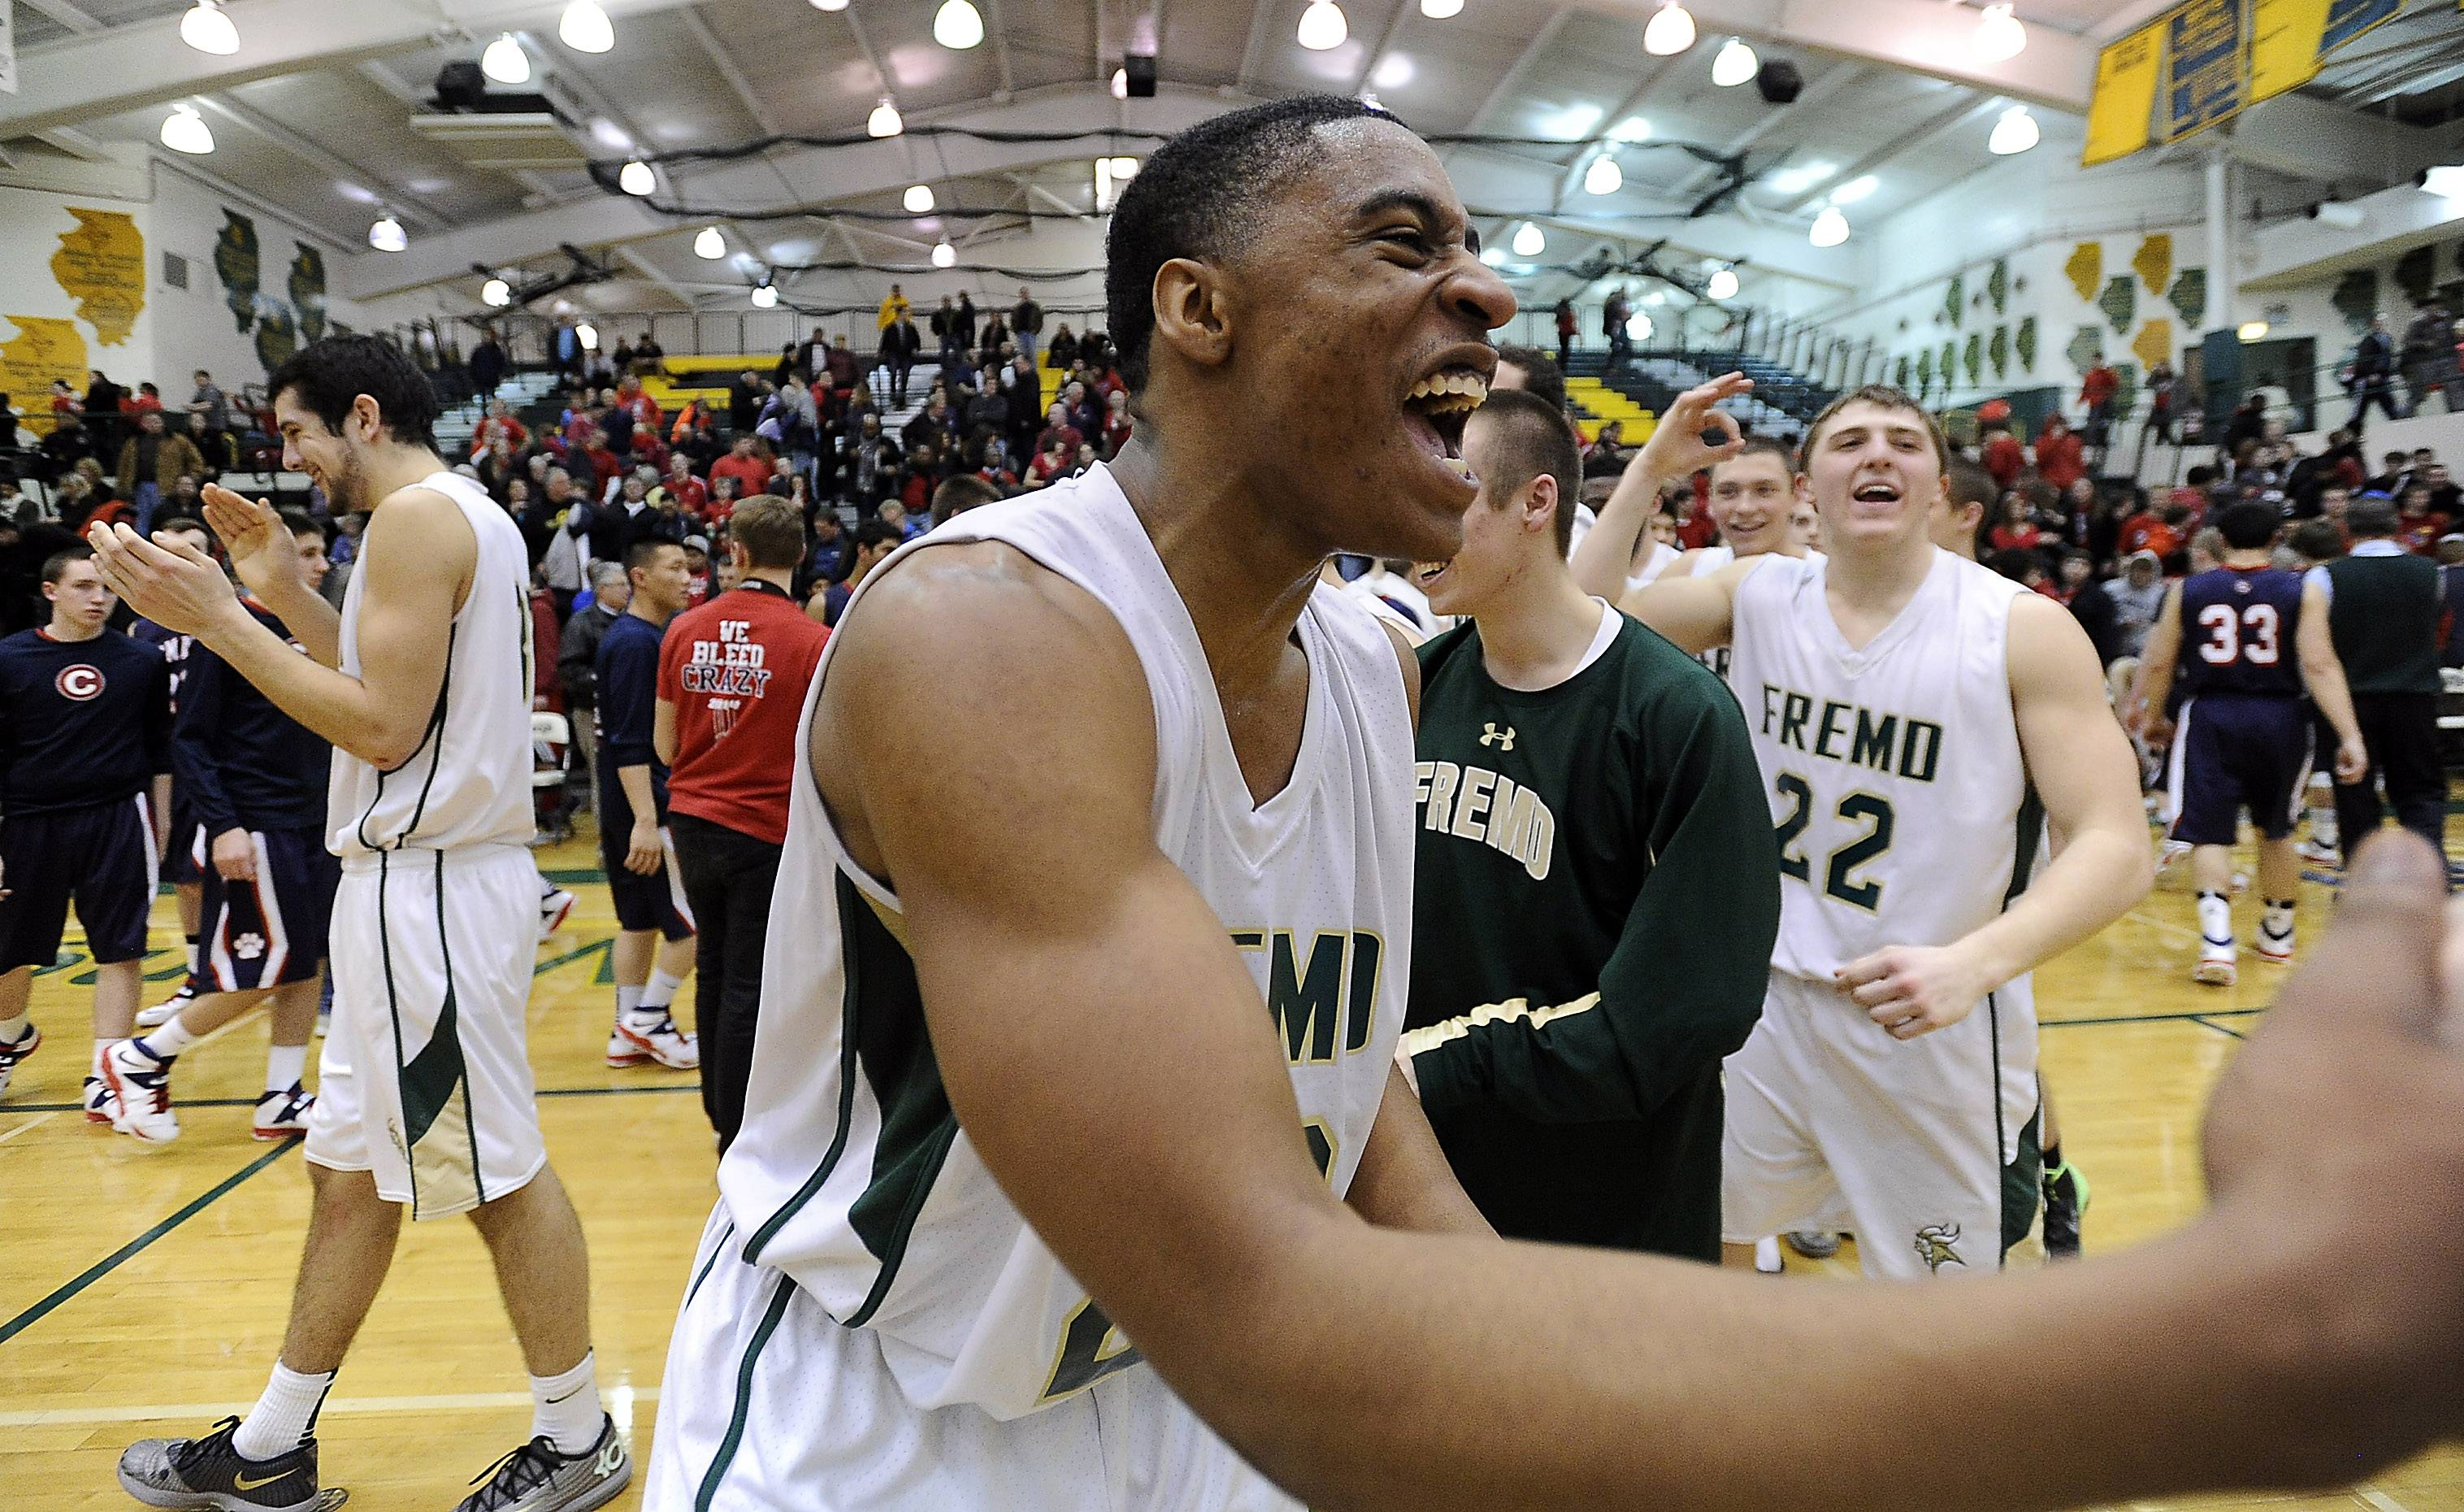 Fremd's Xavier Williams (23) celebrates with his teammates after beating Conant for a share of the MSL West title Friday at Fremd.